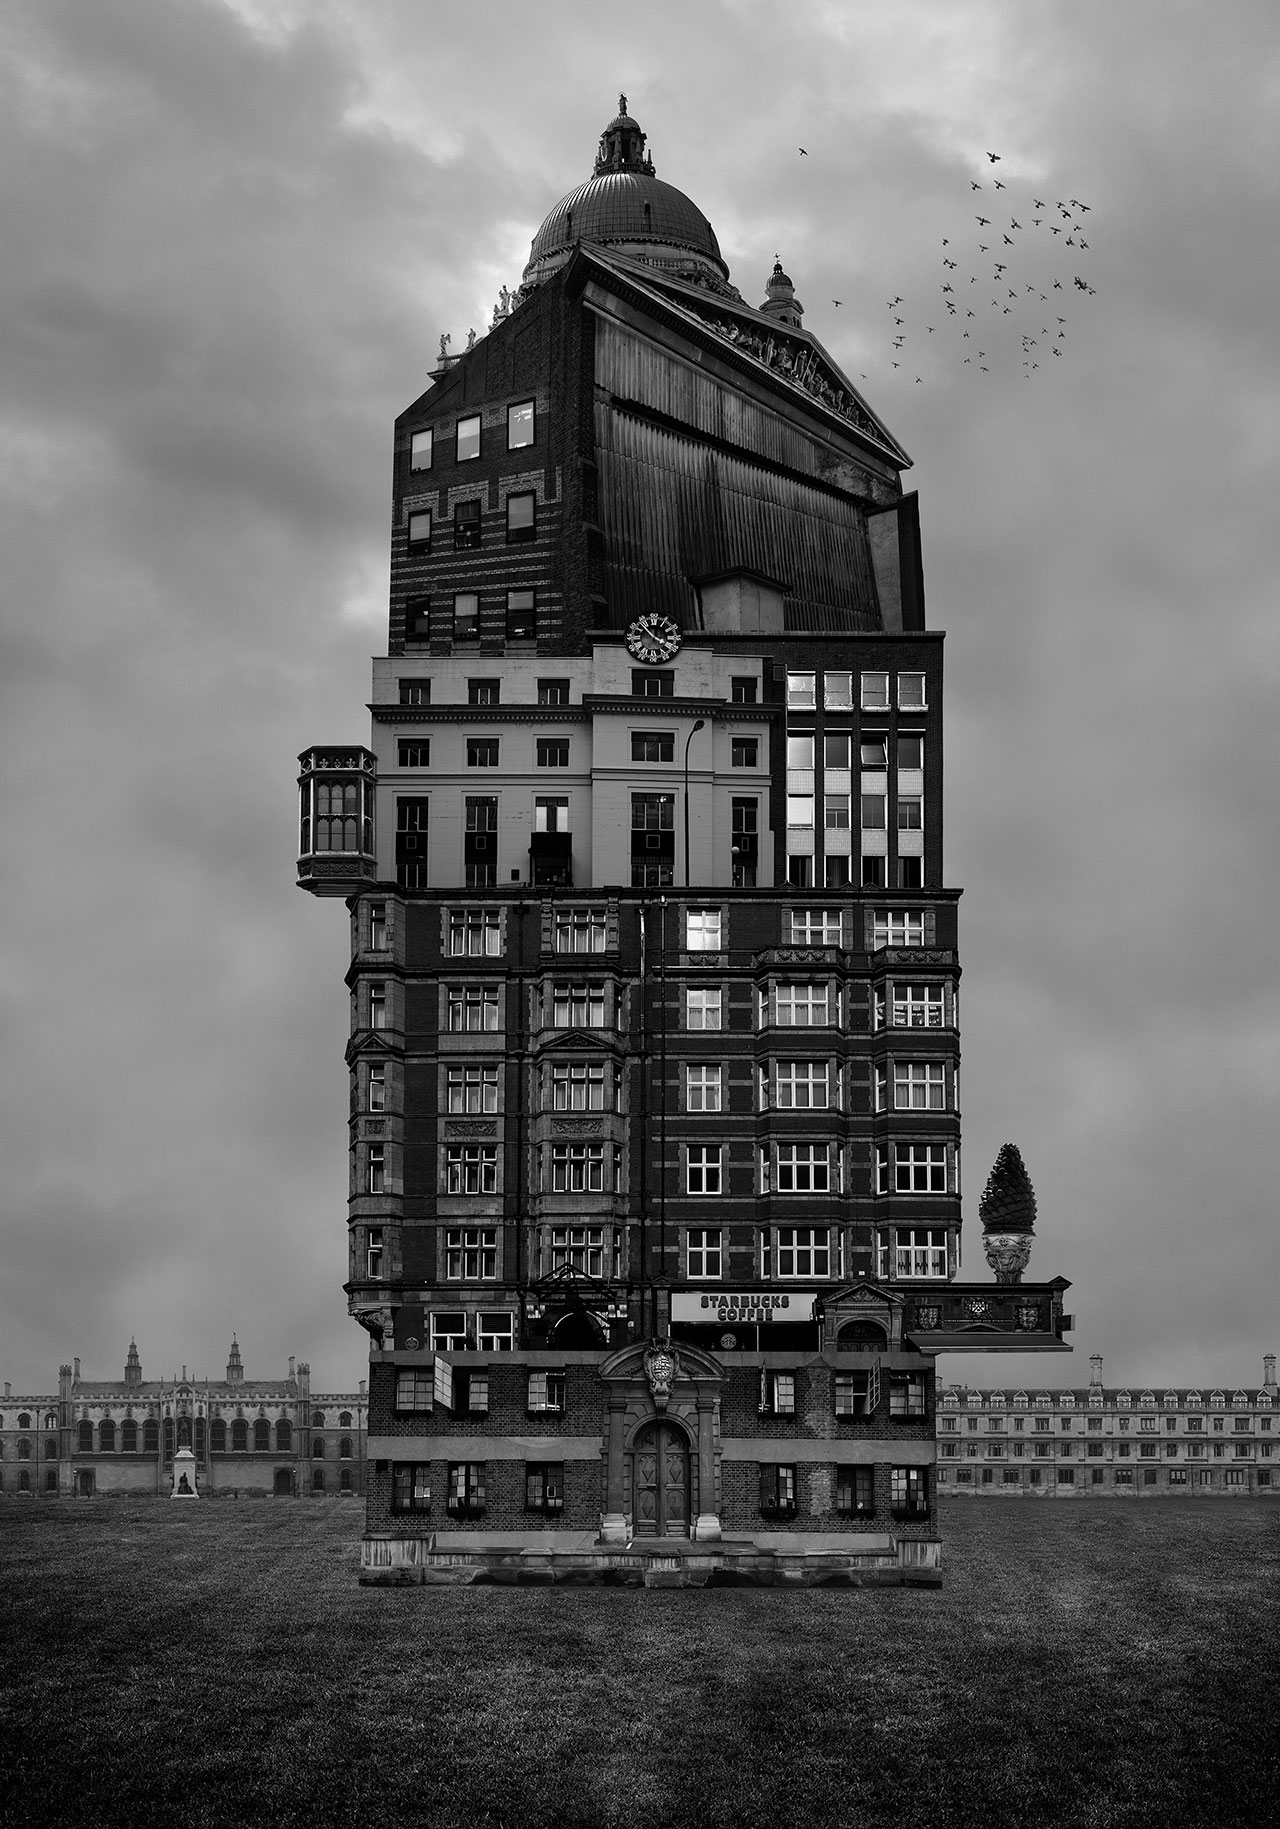 Beomsik Won,Archisculpture 008, 2012. Archival pigment print, 100x70 or 171x120cm.